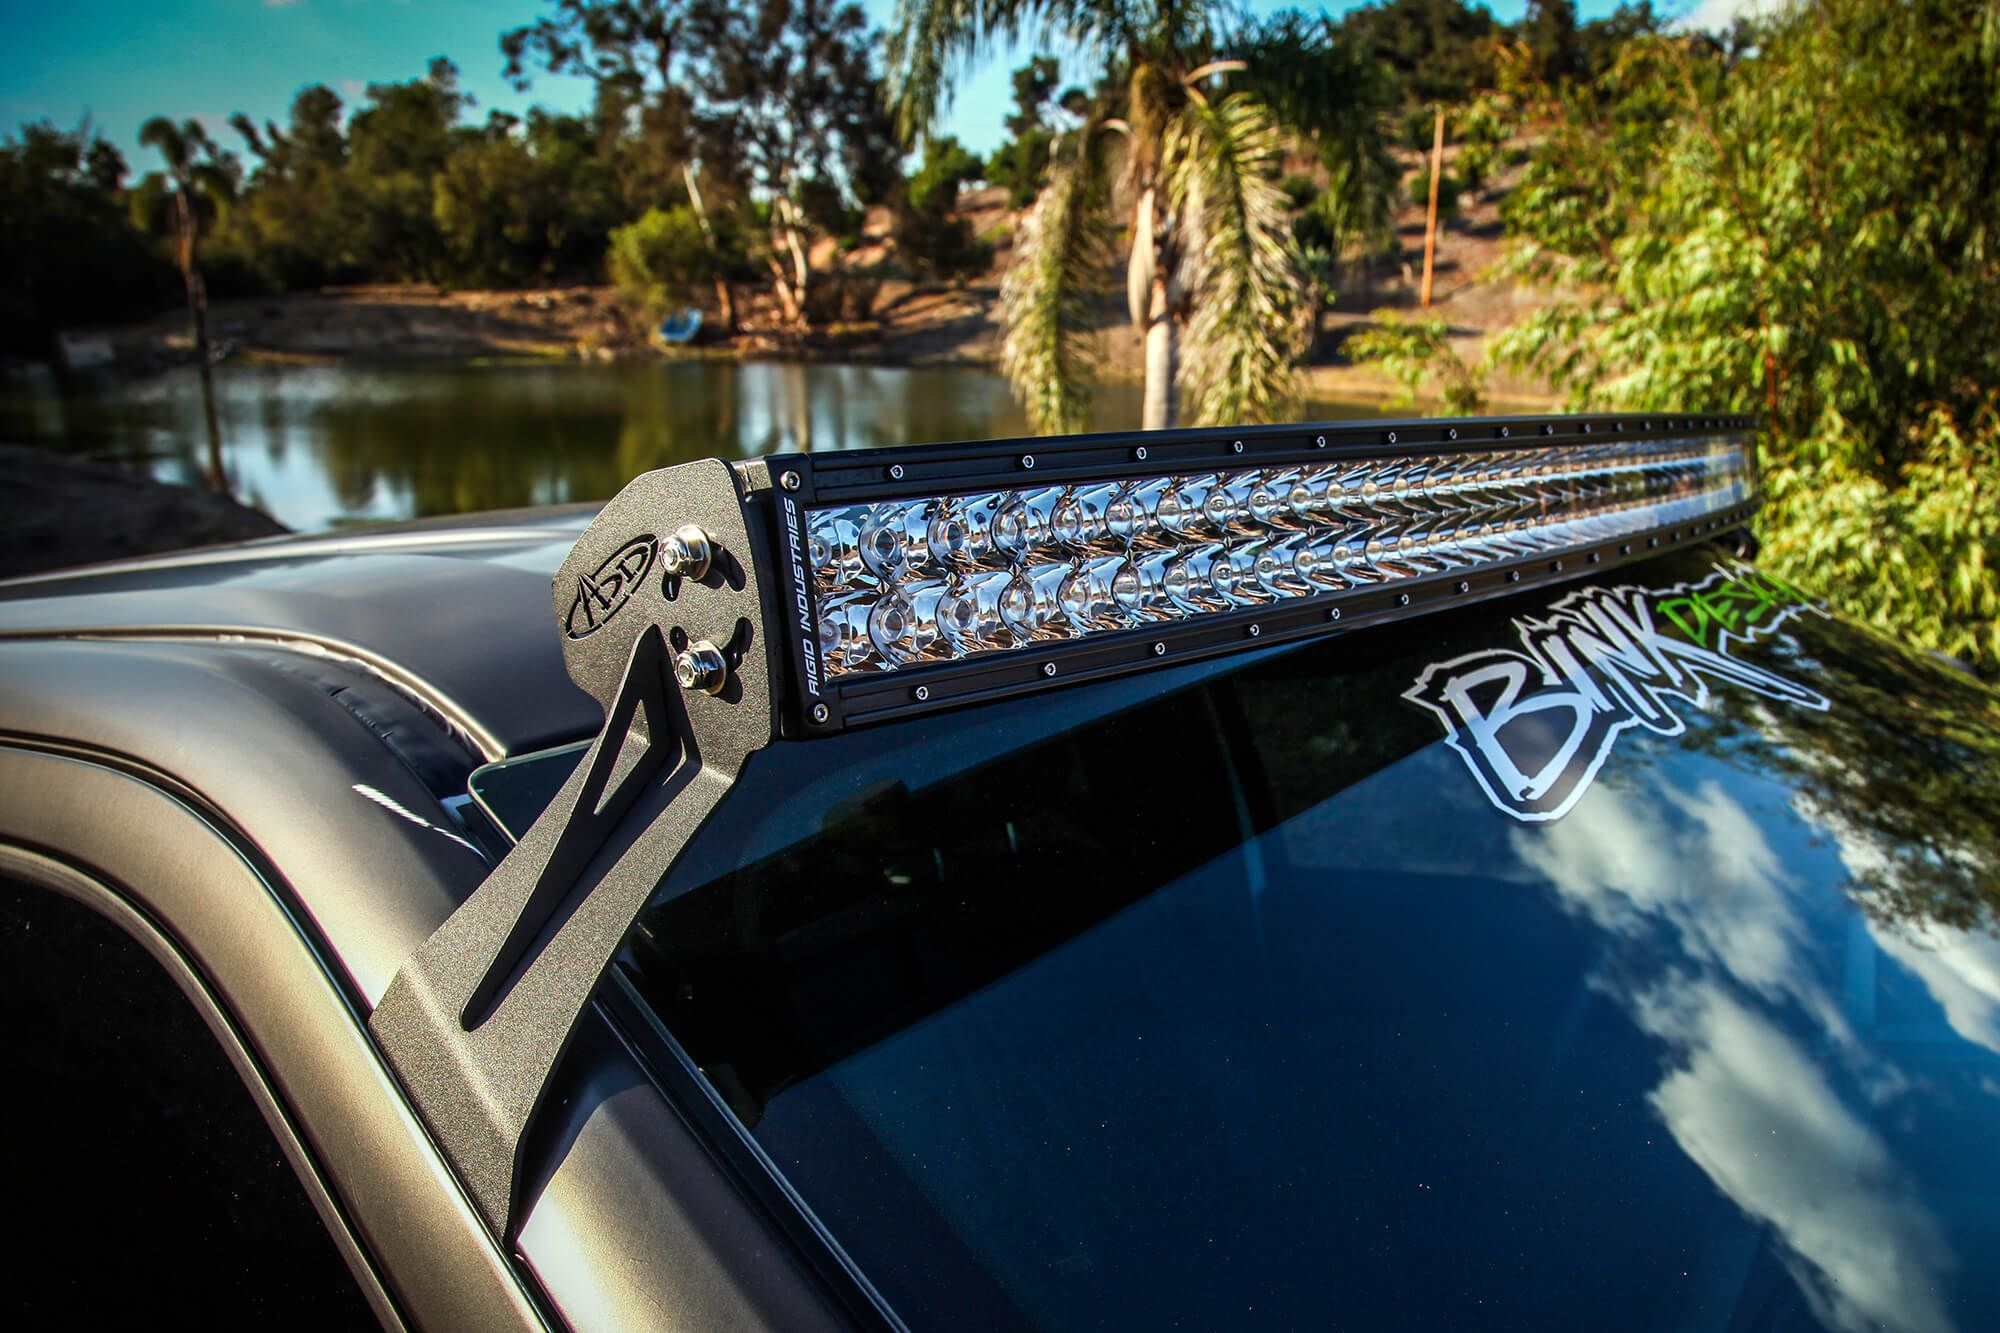 Addictive desert designs 54 light bar roof mount for your ford f addictive desert designs 54 light bar roof mount for your ford f 150 mozeypictures Choice Image